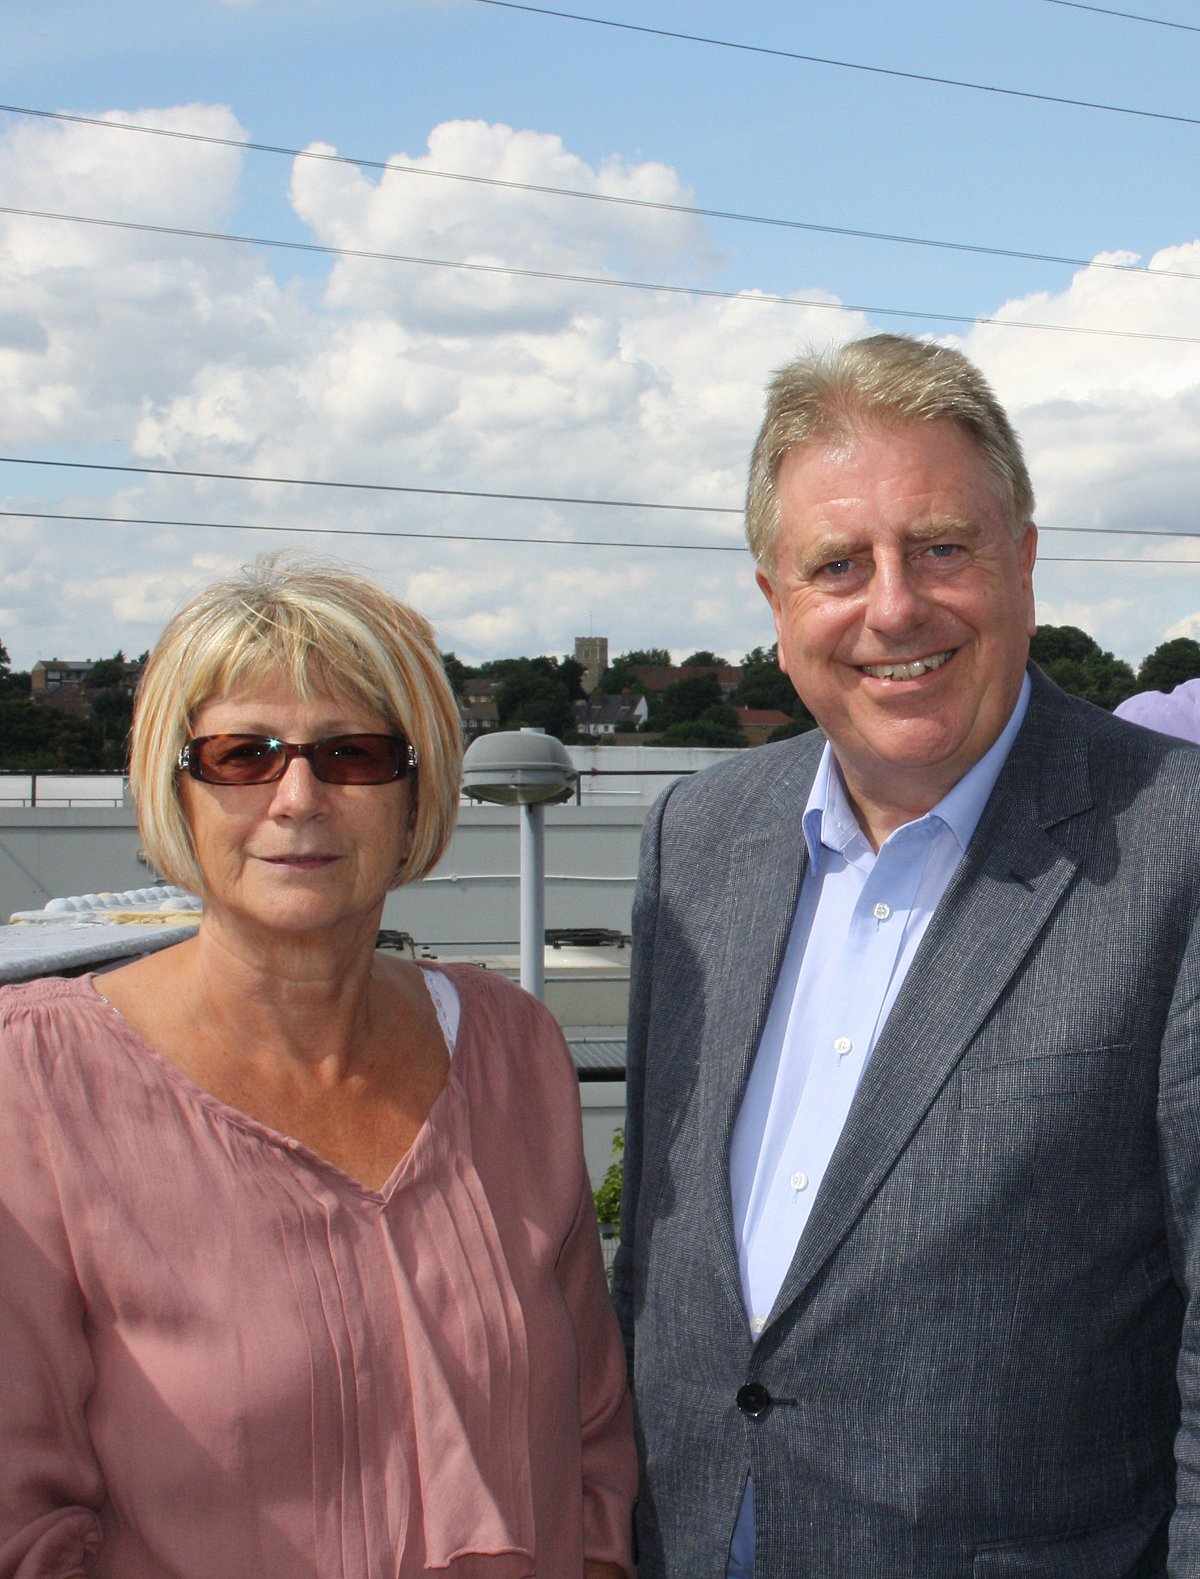 Councillor Geraldene Lucia-Hennis and David Evennett MP